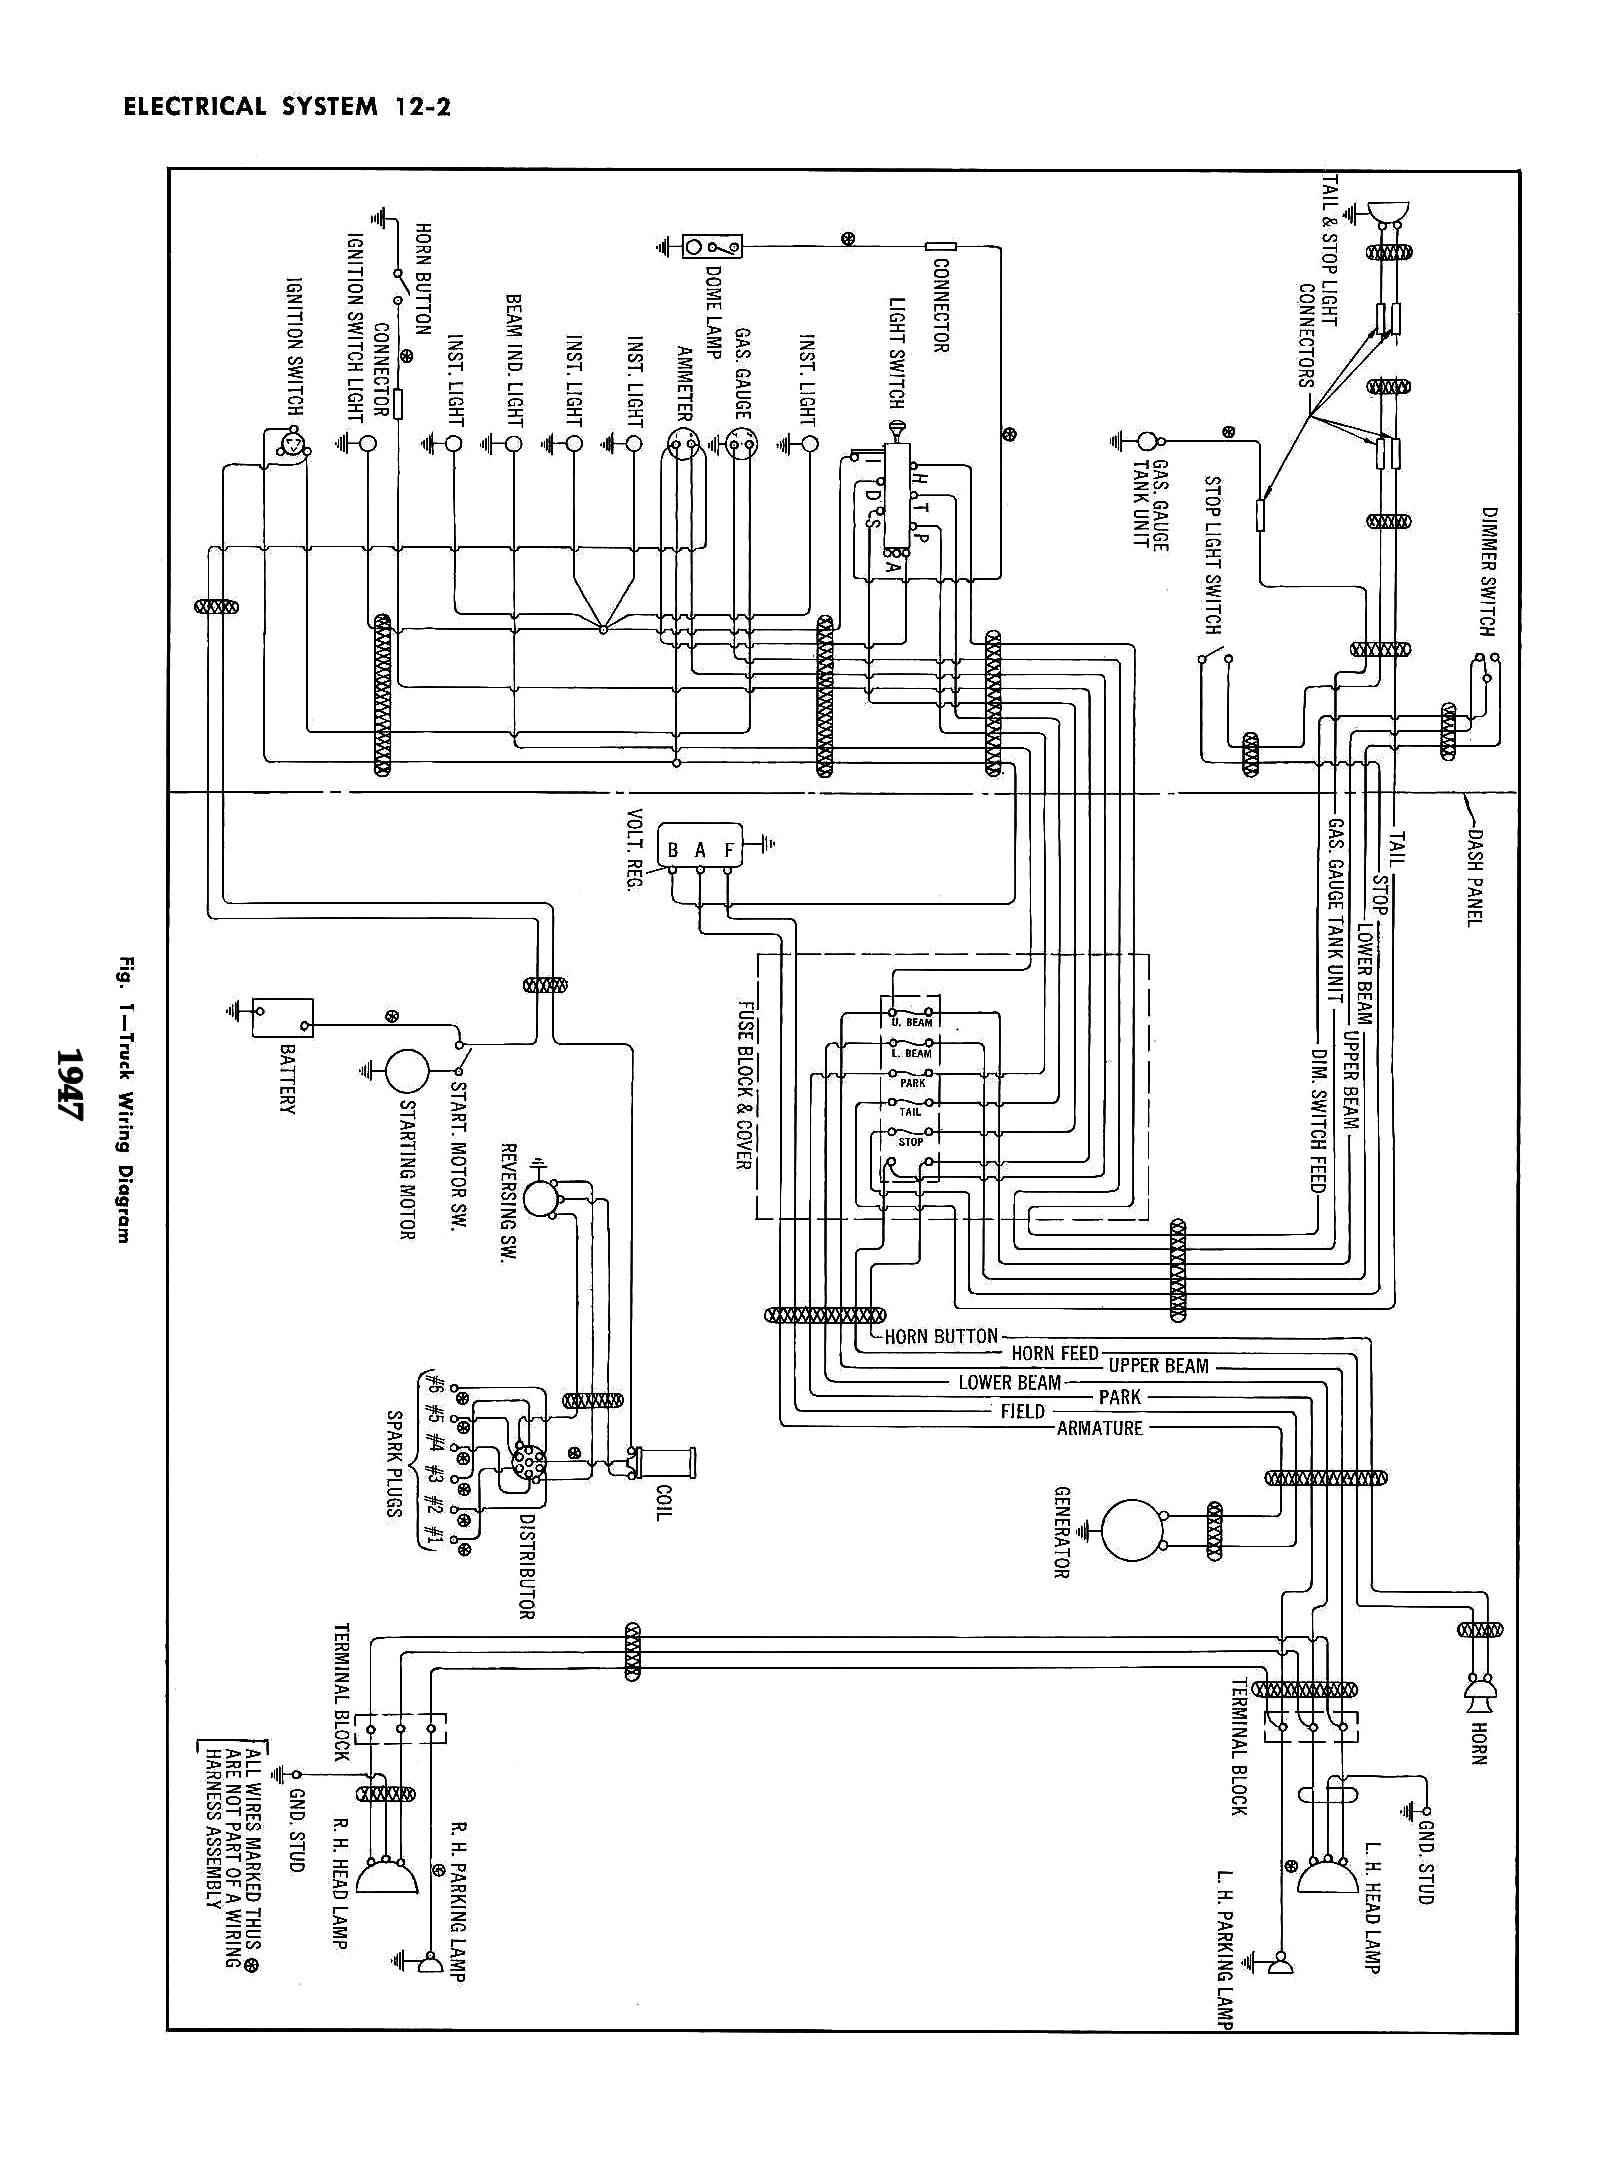 Berhinger Pm Wiring Diagram